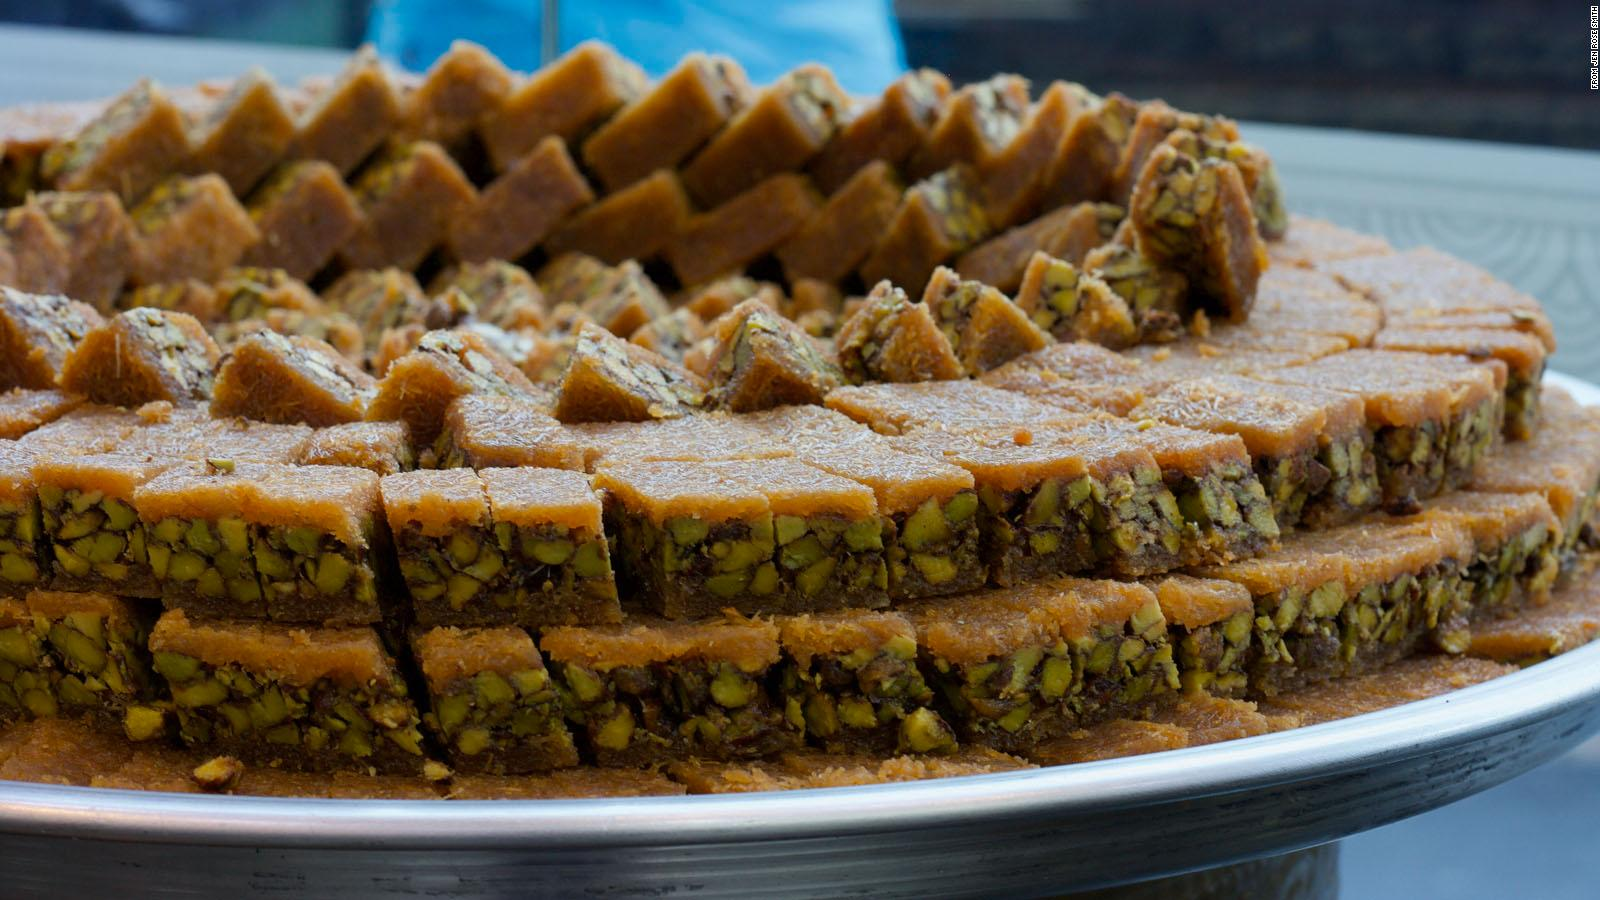 Jordan food and drink: 10 things you must try there | CNN Travel